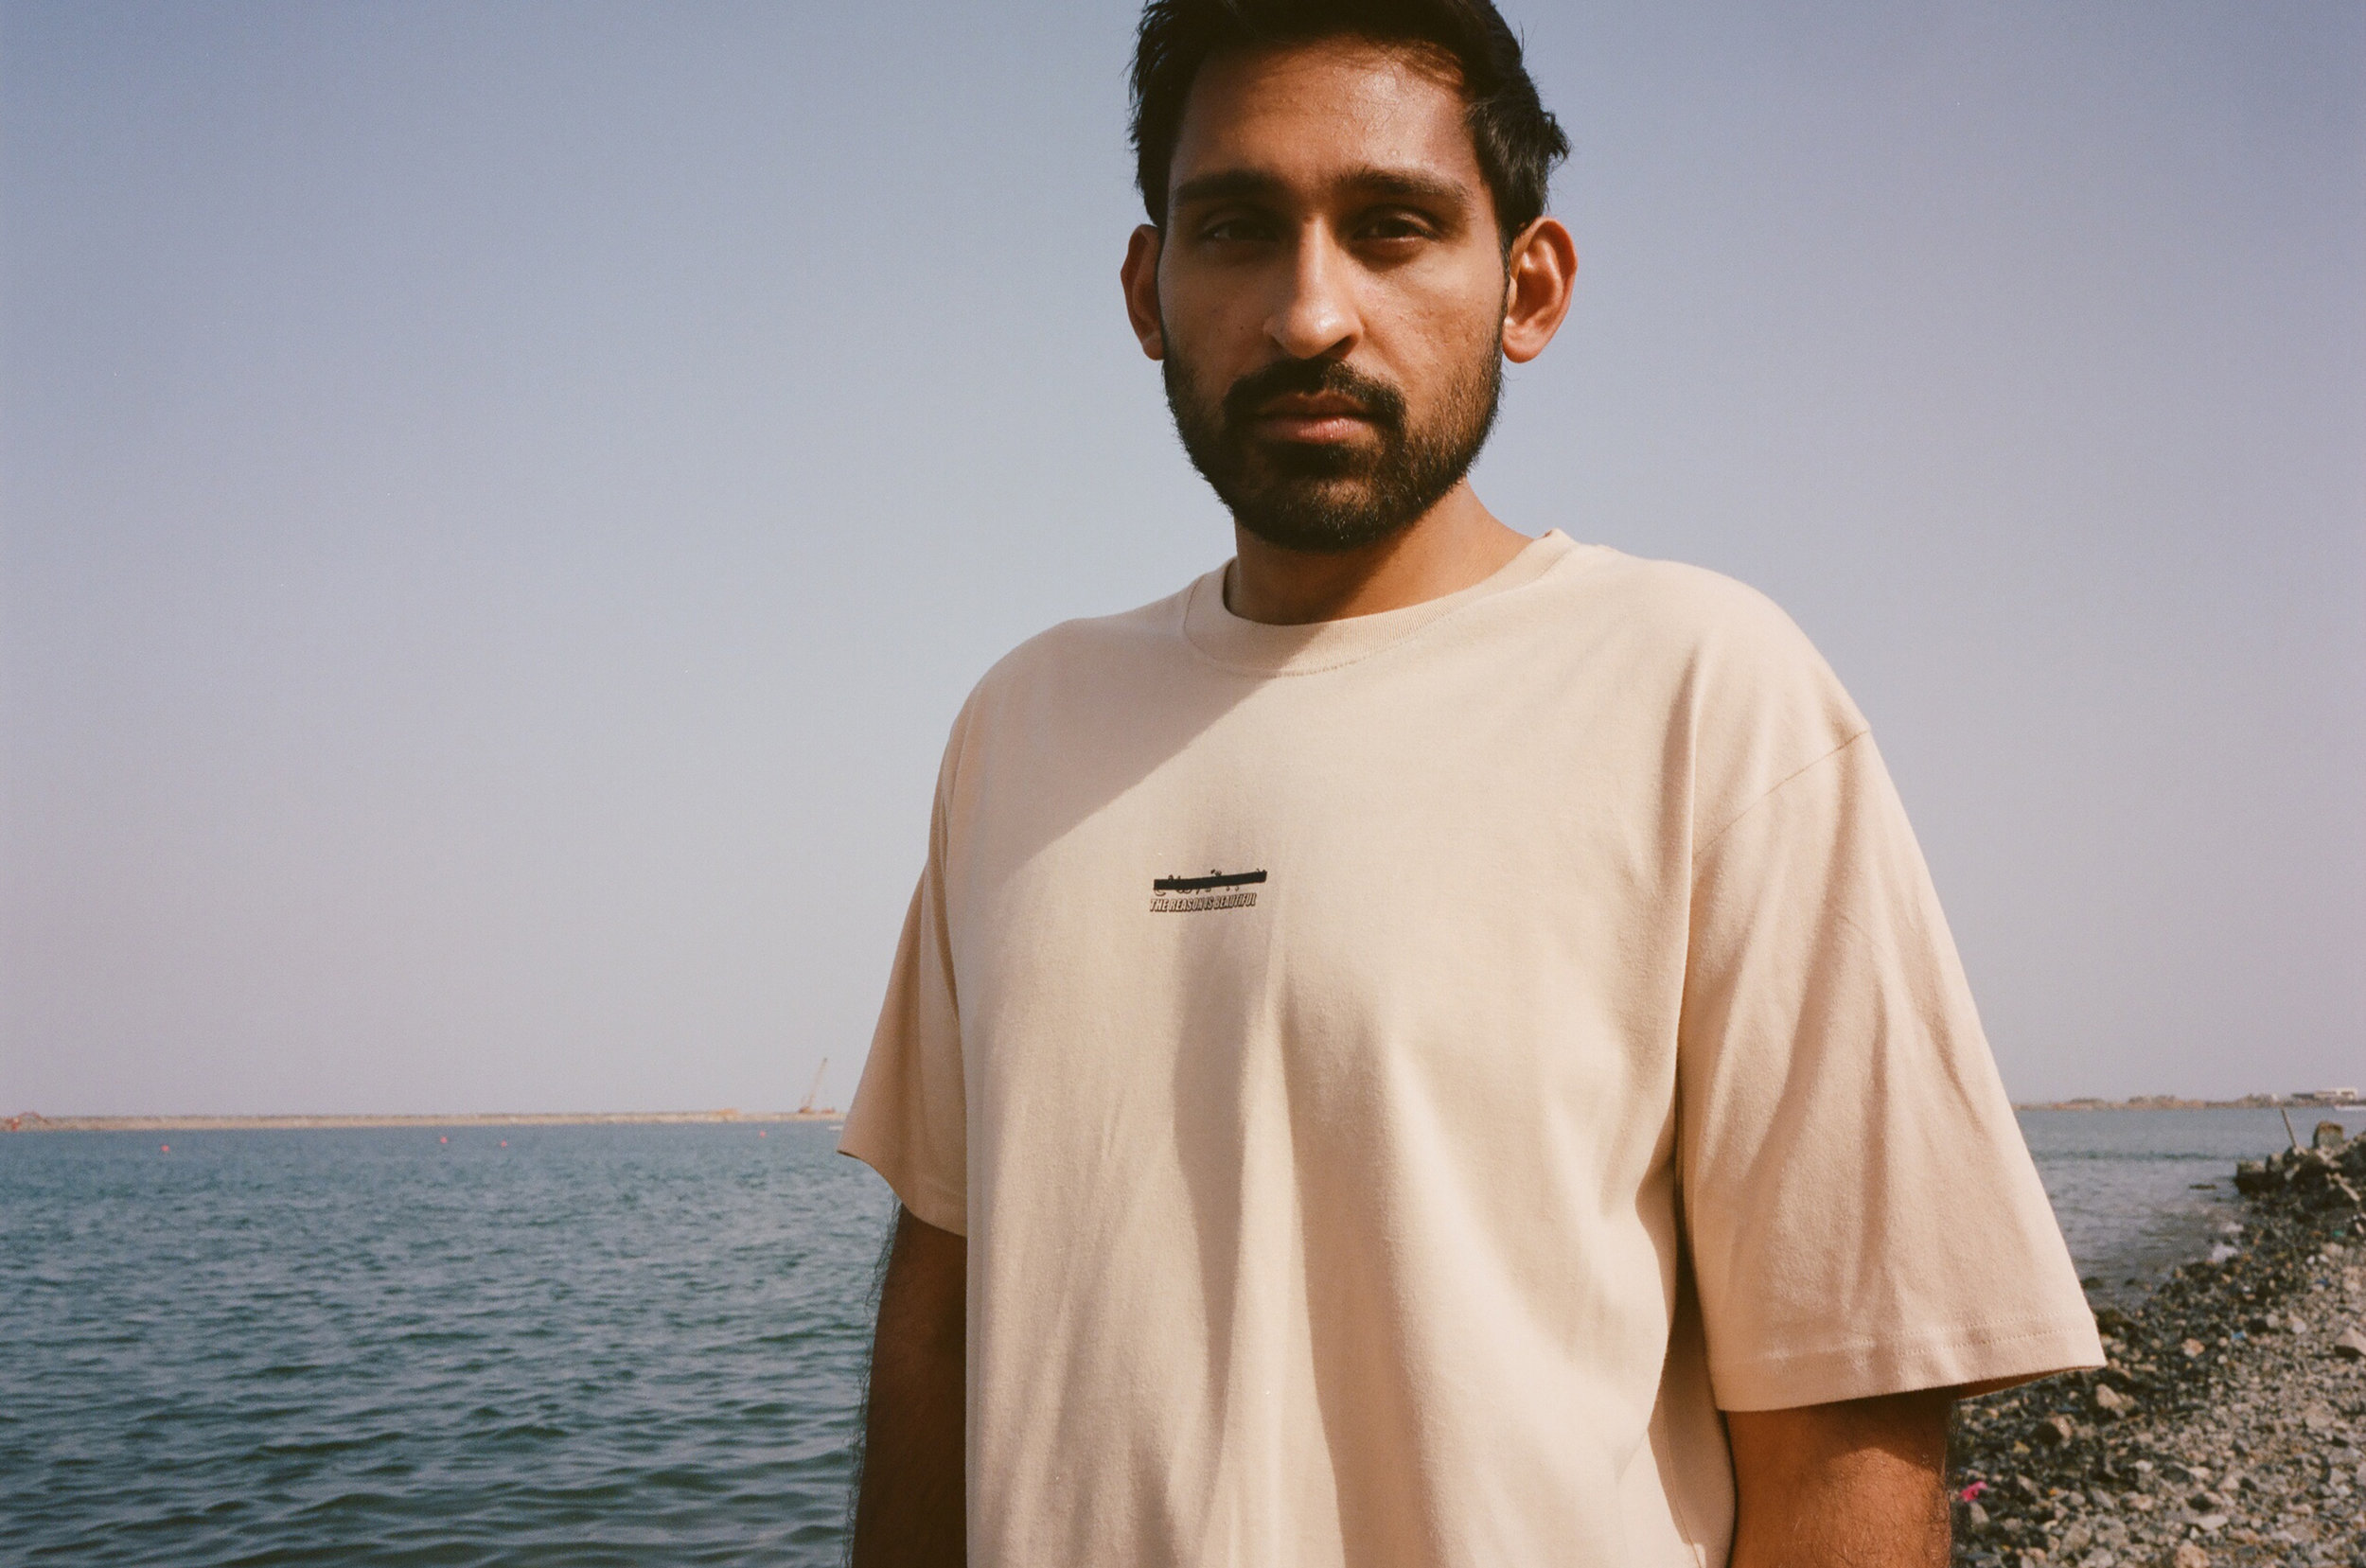 amongst-few-limited-liability-collection-lookbook-04.jpg